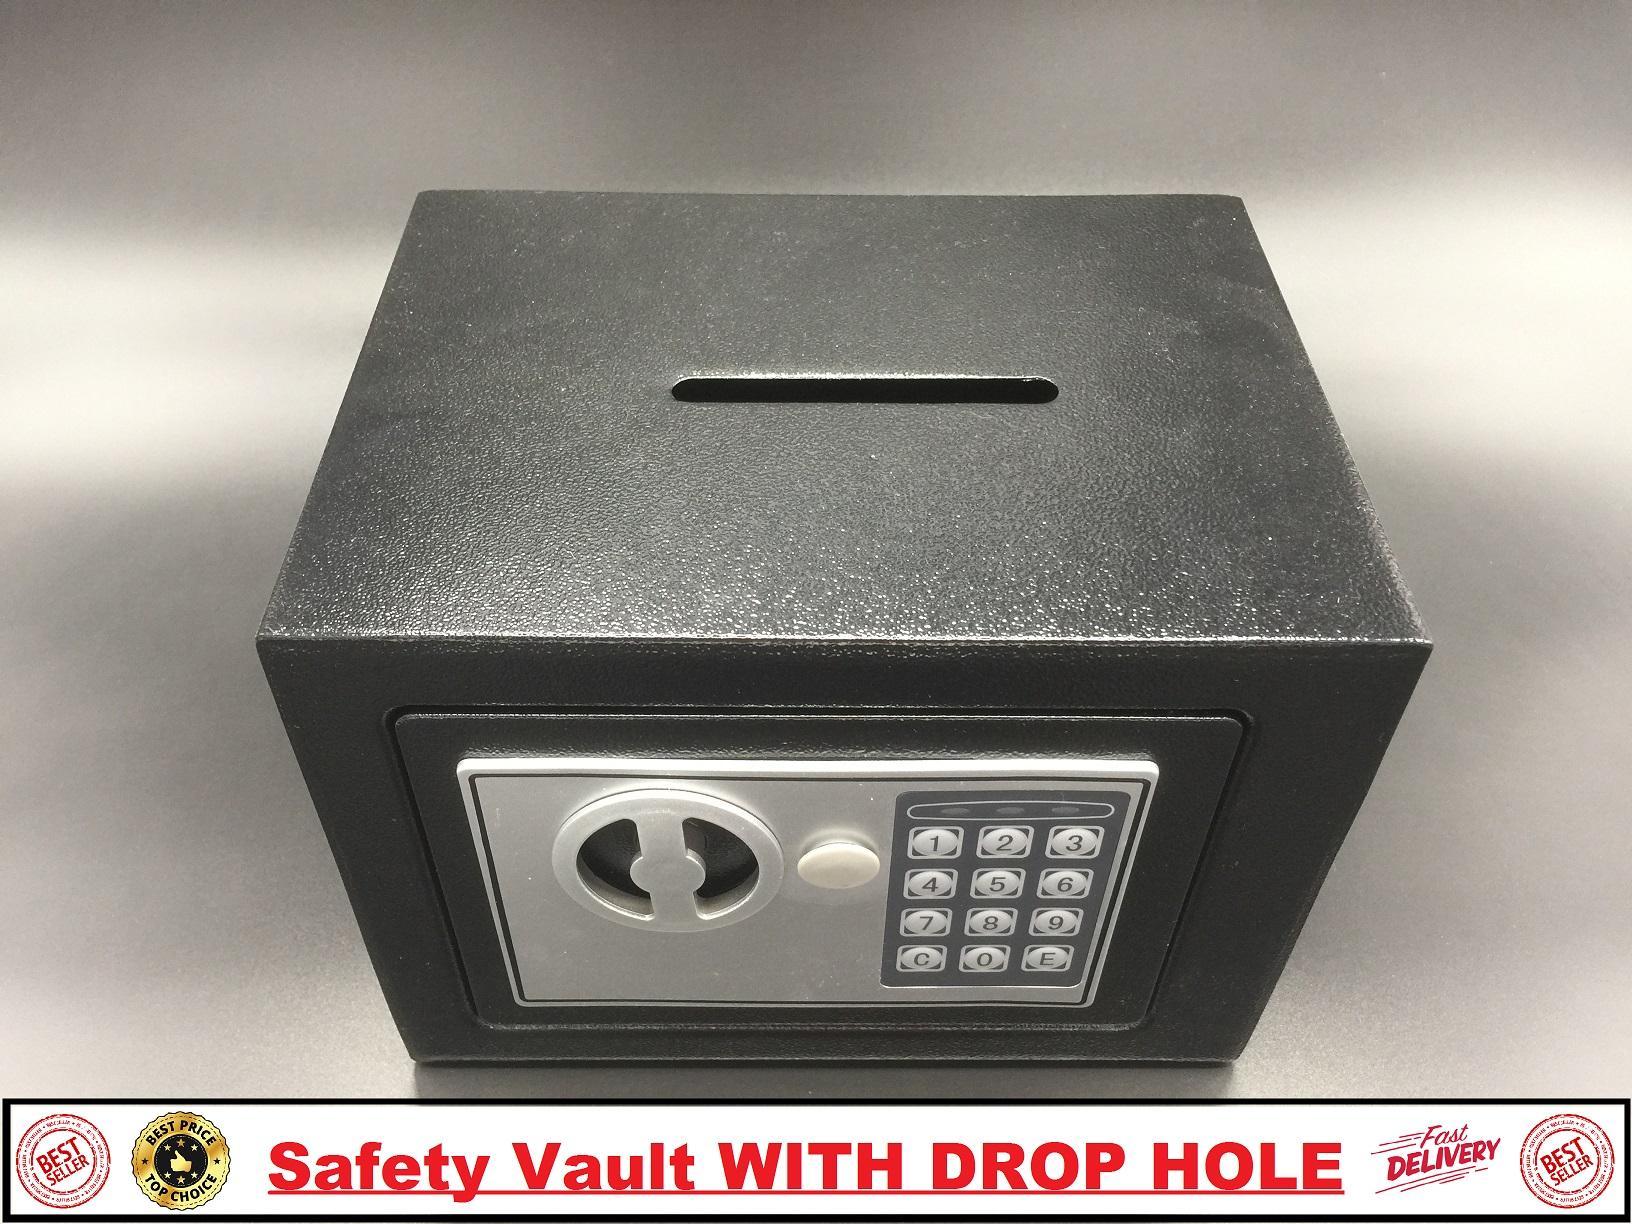 Safety Vault with Drophole (FREE waterproof pouch) security drop hole